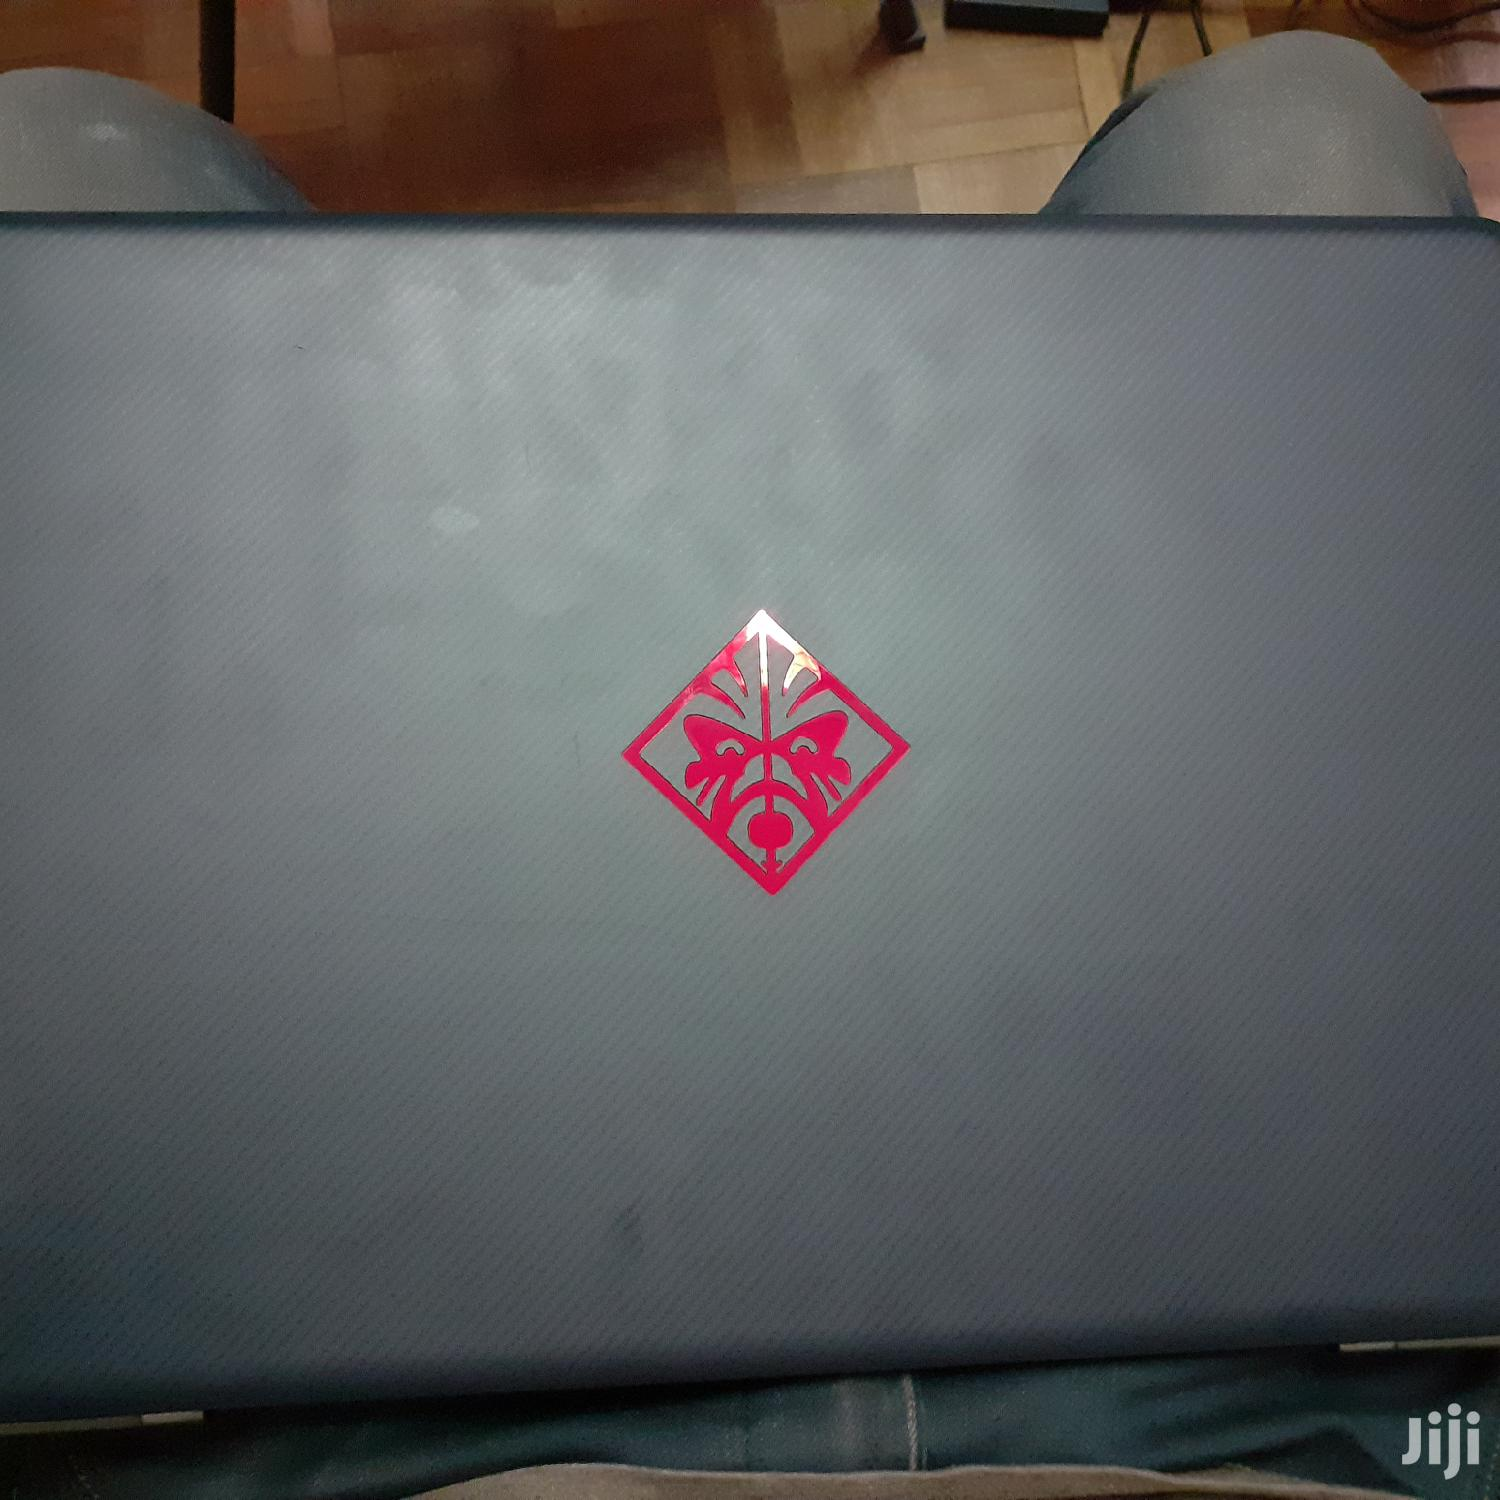 Laptop HP Omen 17 12GB Intel Core I7 SSHD (Hybrid) 1T | Laptops & Computers for sale in Kwashieman, Greater Accra, Ghana